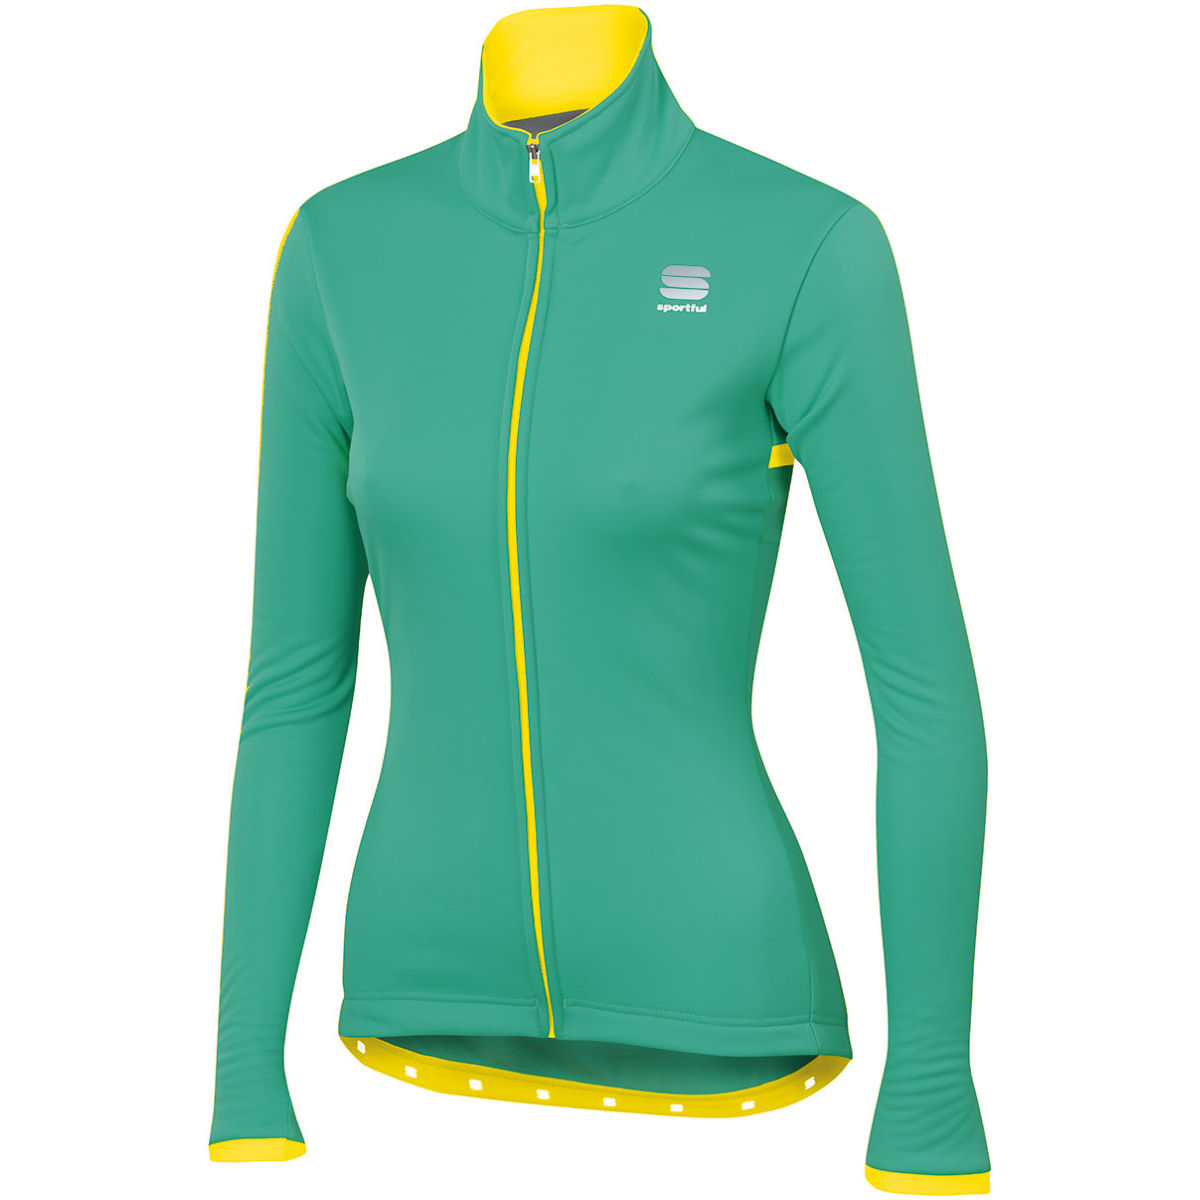 Veste Femme Sportful Luna Softshell - XL Waterfall/Yellow Flu Vestes